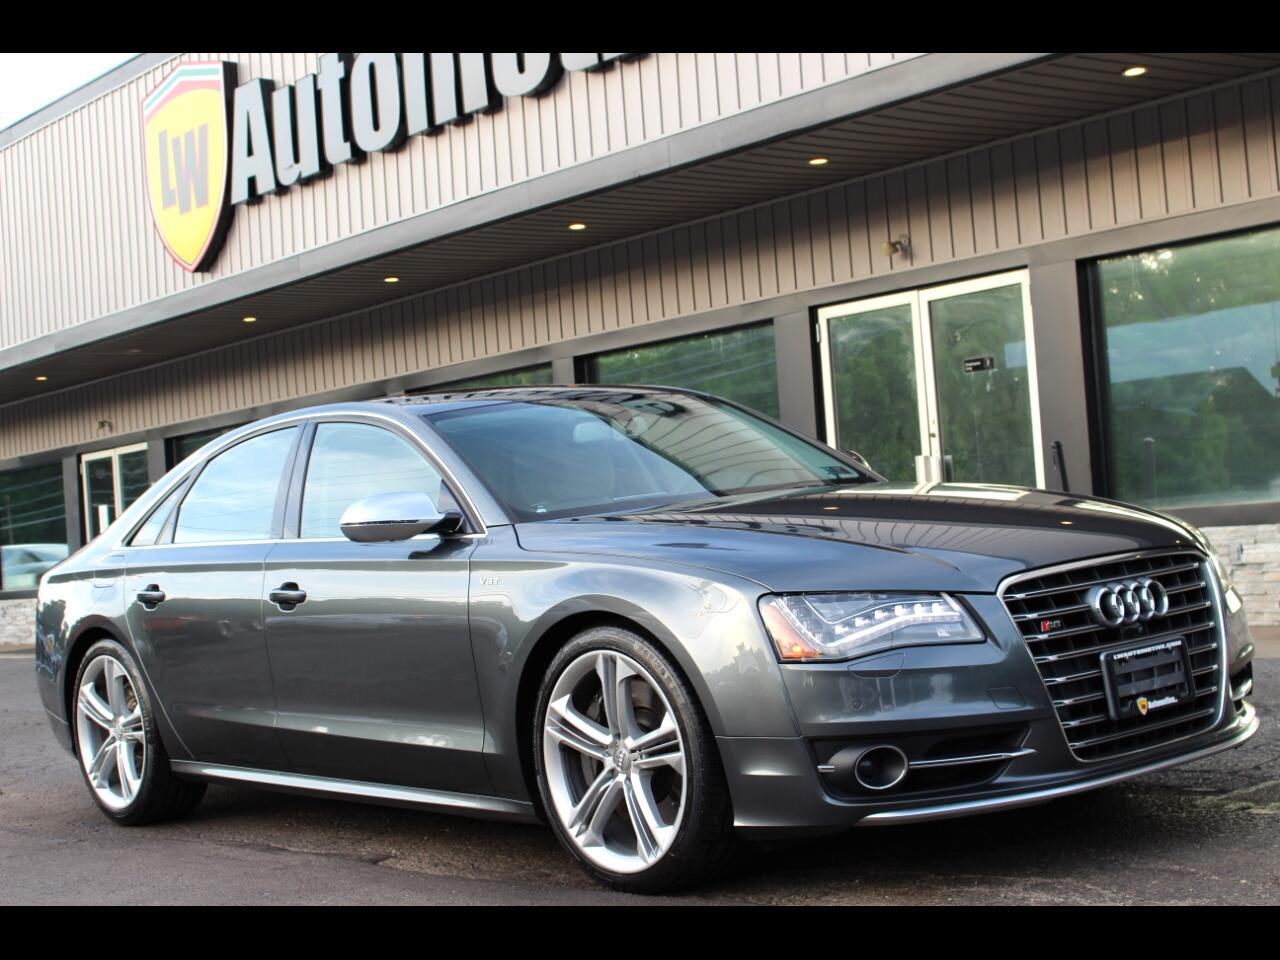 2013 Audi S8 4.0 Sedan quattro Tiptronic